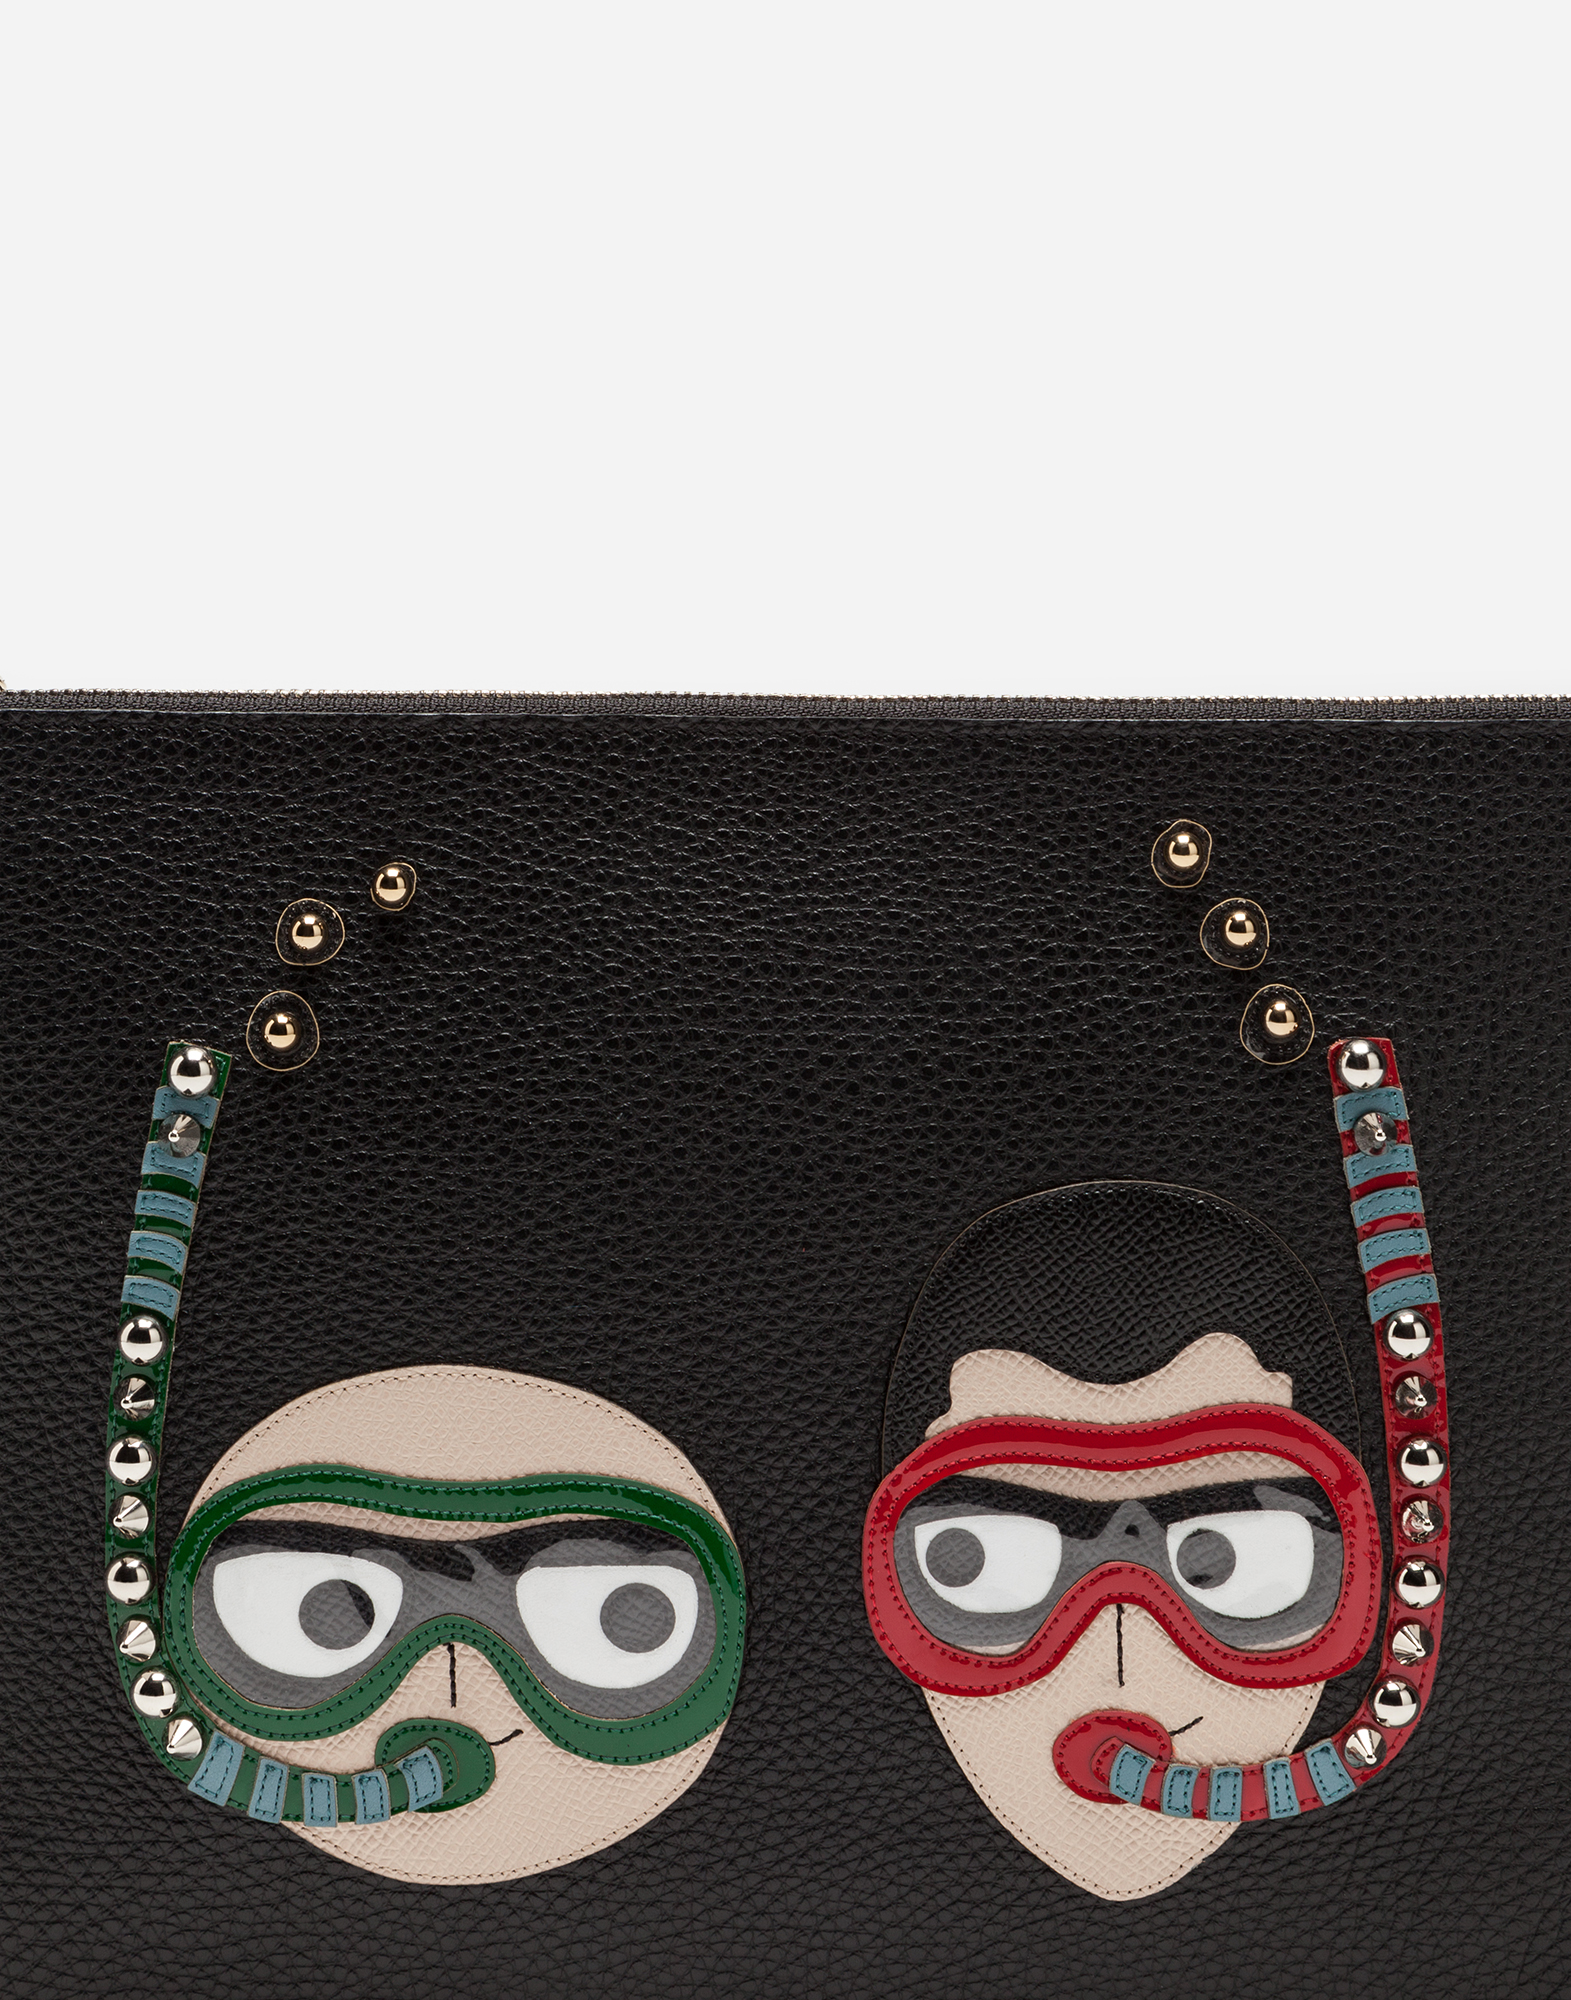 DAUPHINE CALFSKIN CLUTCH WITH PATCHES OF THE DESIGNERS